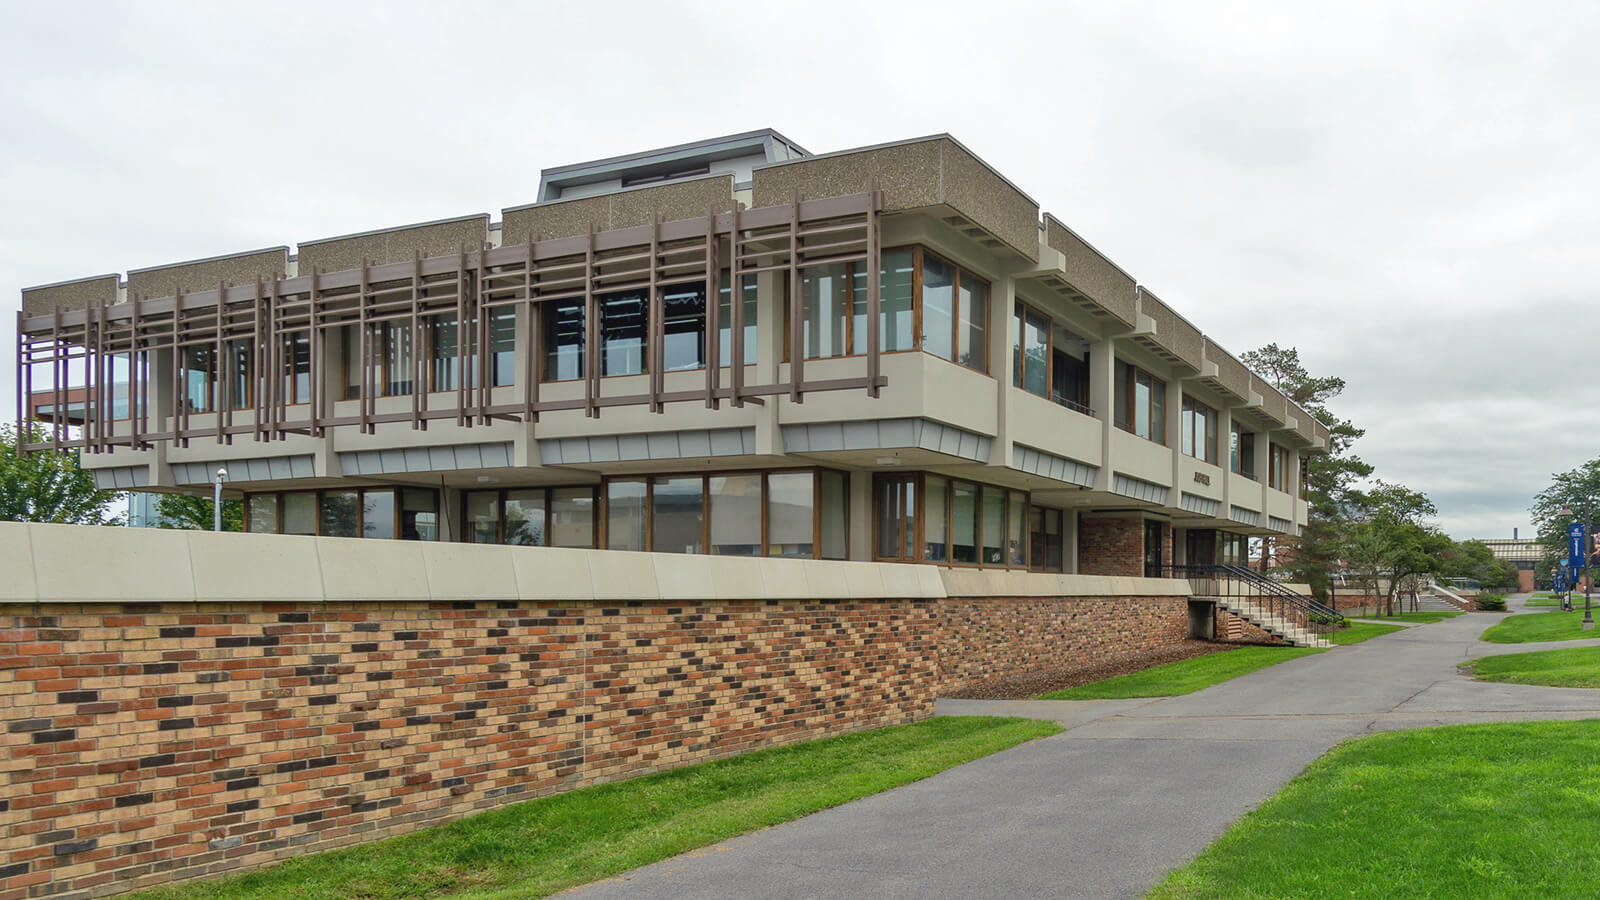 An image of a building on the Ithaca College campus.